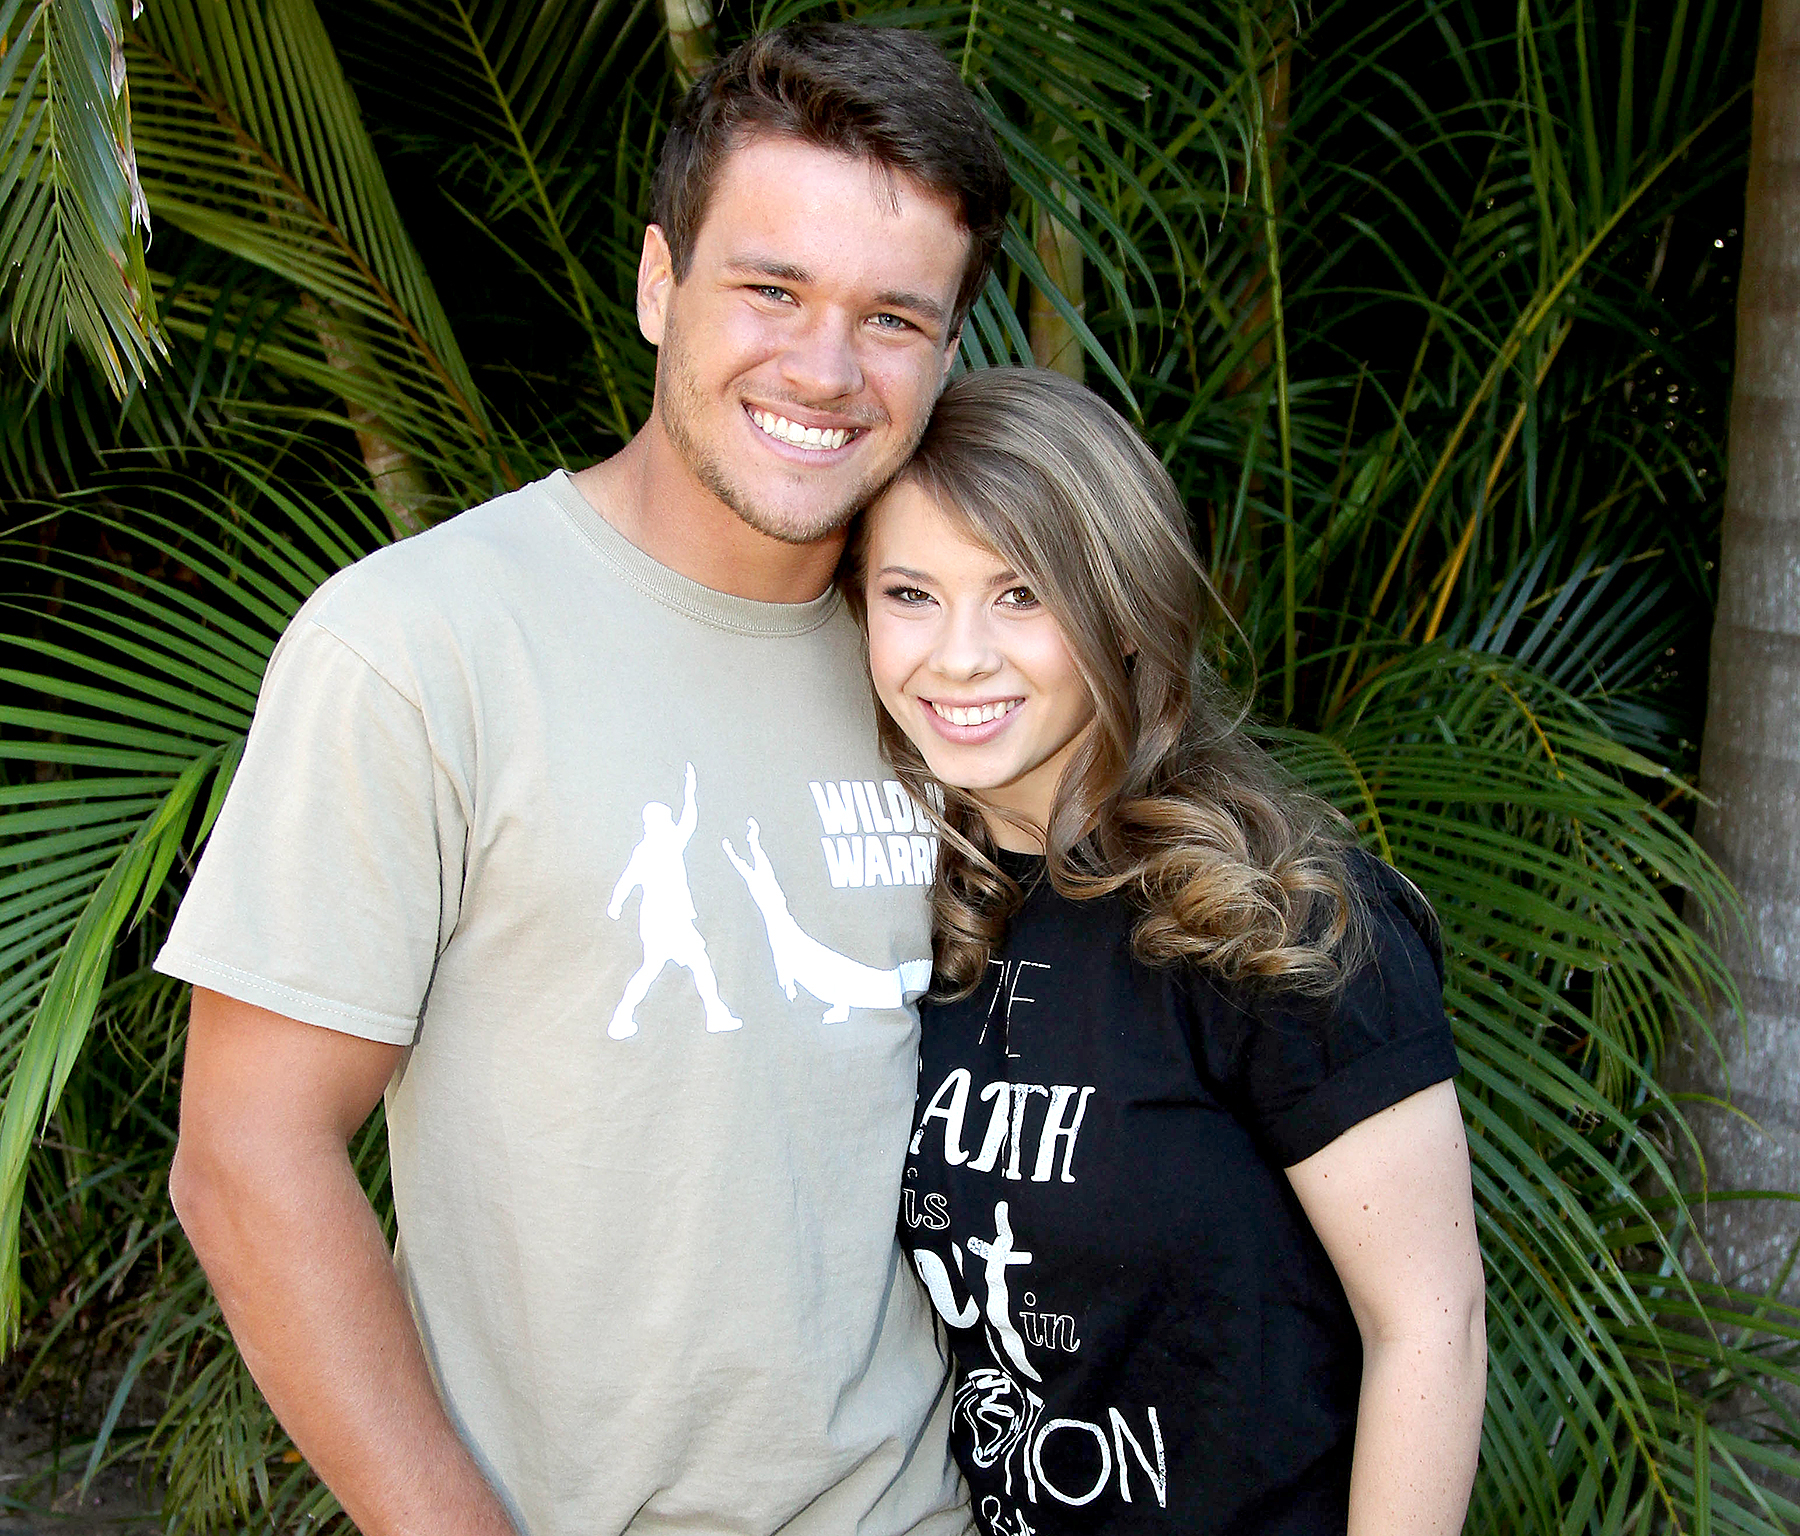 Bindi Irwin pictured at Australia Zoo for her 18th Birthday celebrations with her boyfriend Chandler Powell on July 24, 2016 in Queensland, Australia.